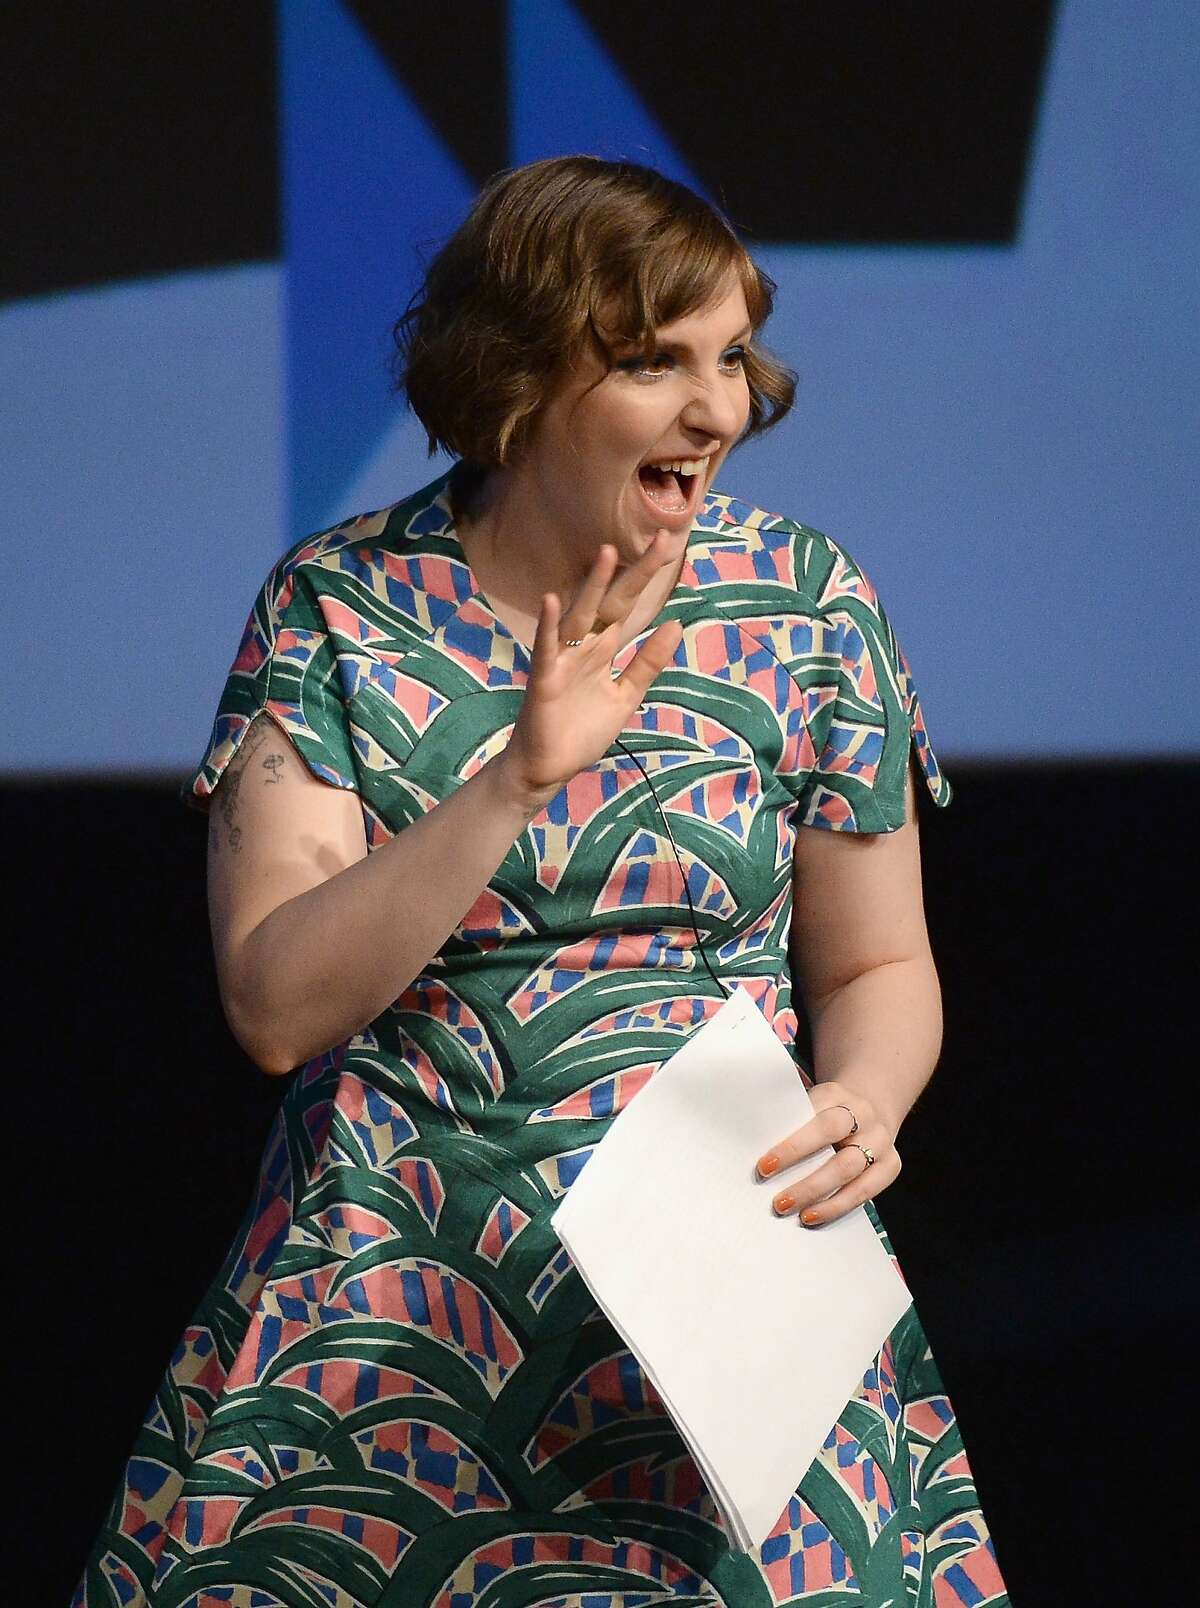 AUSTIN, TX - MARCH 10: Filmmaker Lena Dunham speaks during the SXSW 2014 Film Keynote during the 2014 SXSW Music, Film + Interactive Festival at the Austin Convention Center on March 10, 2014 in Austin, Texas. (Photo by Michael Buckner/Getty Images for SXSW)